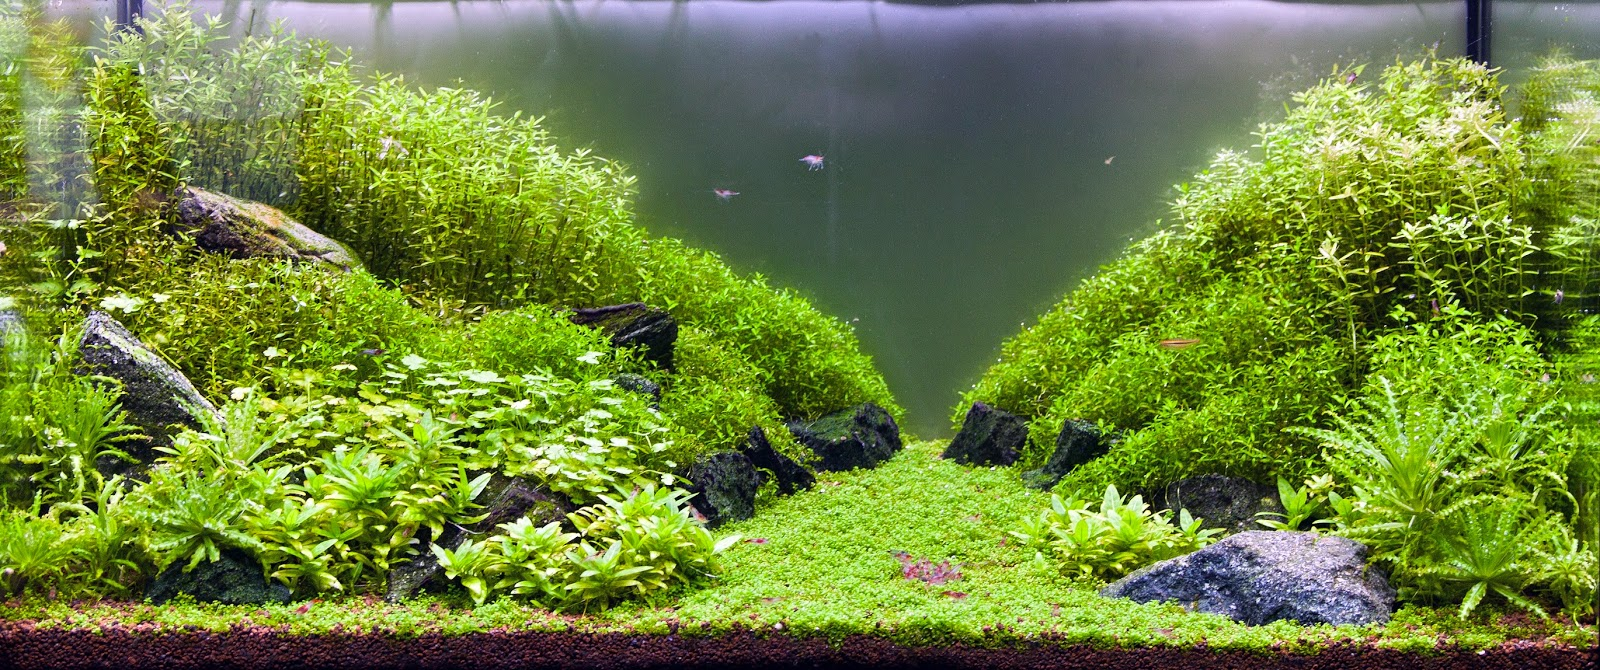 Aquascaping spain el pradillo by ana sanchez gonzalez - Aquascape espana ...